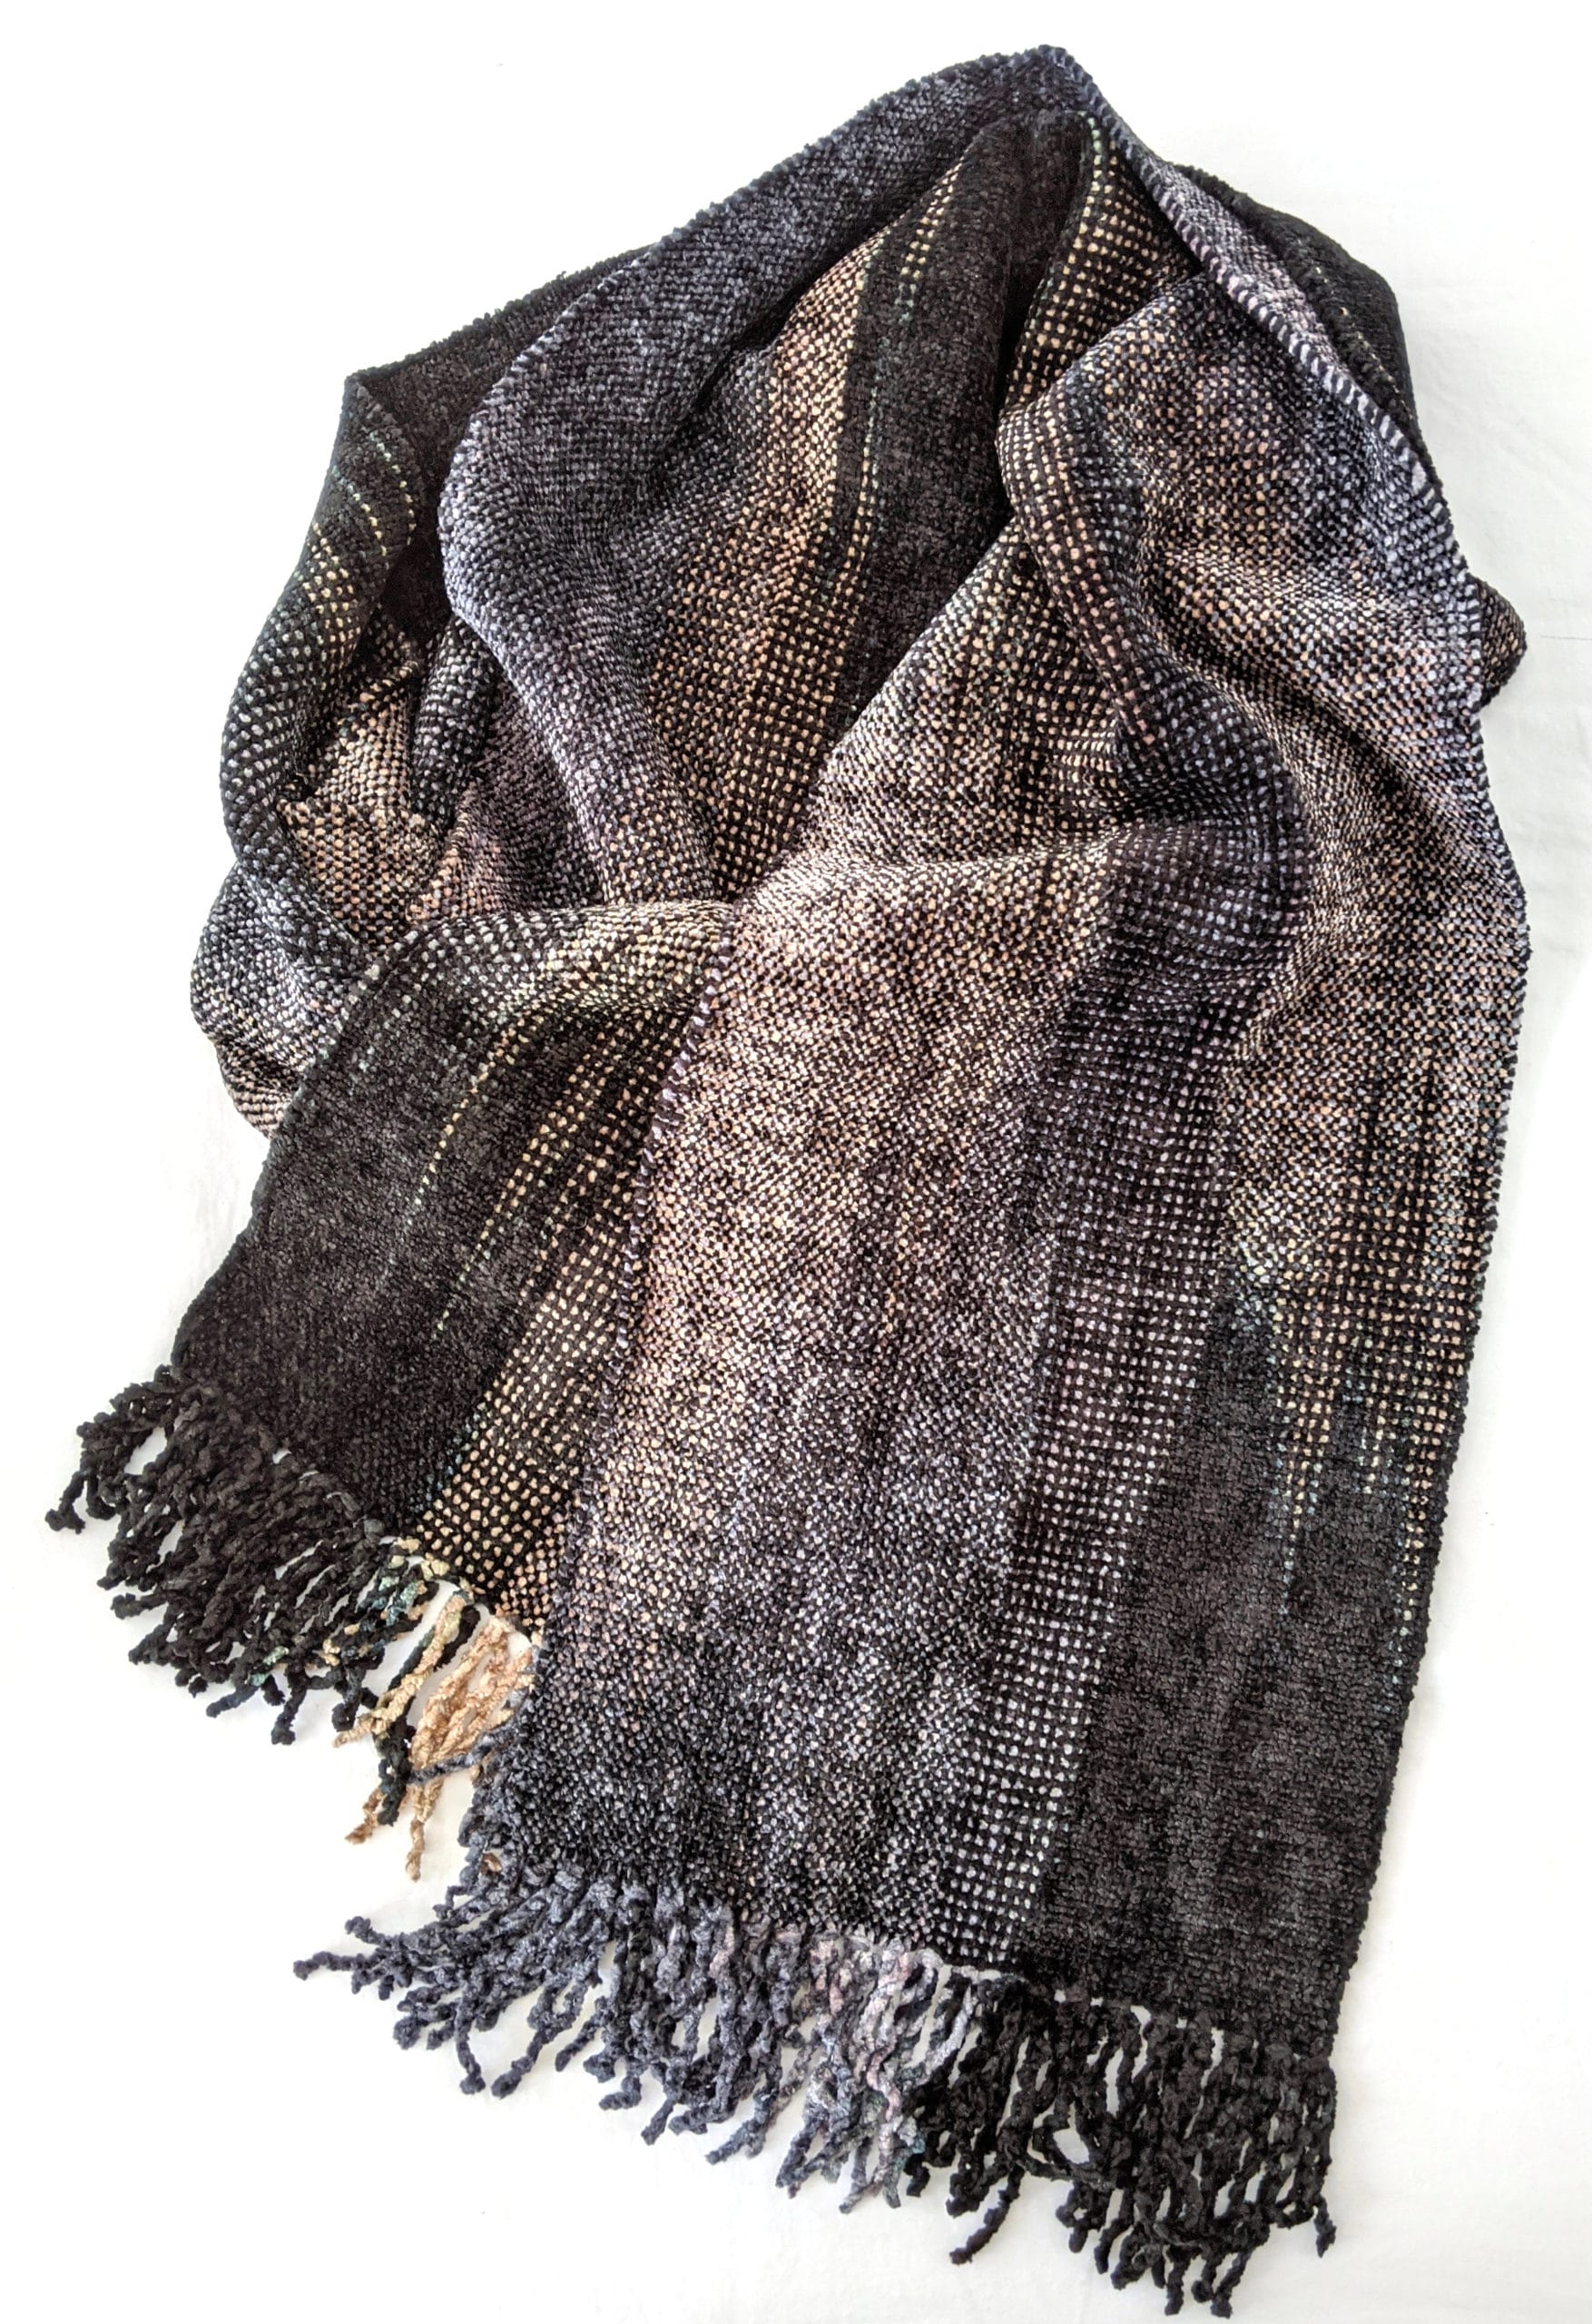 Black, Gray, Beige - Bamboo Chenille Handwoven Scarf 8 x 68